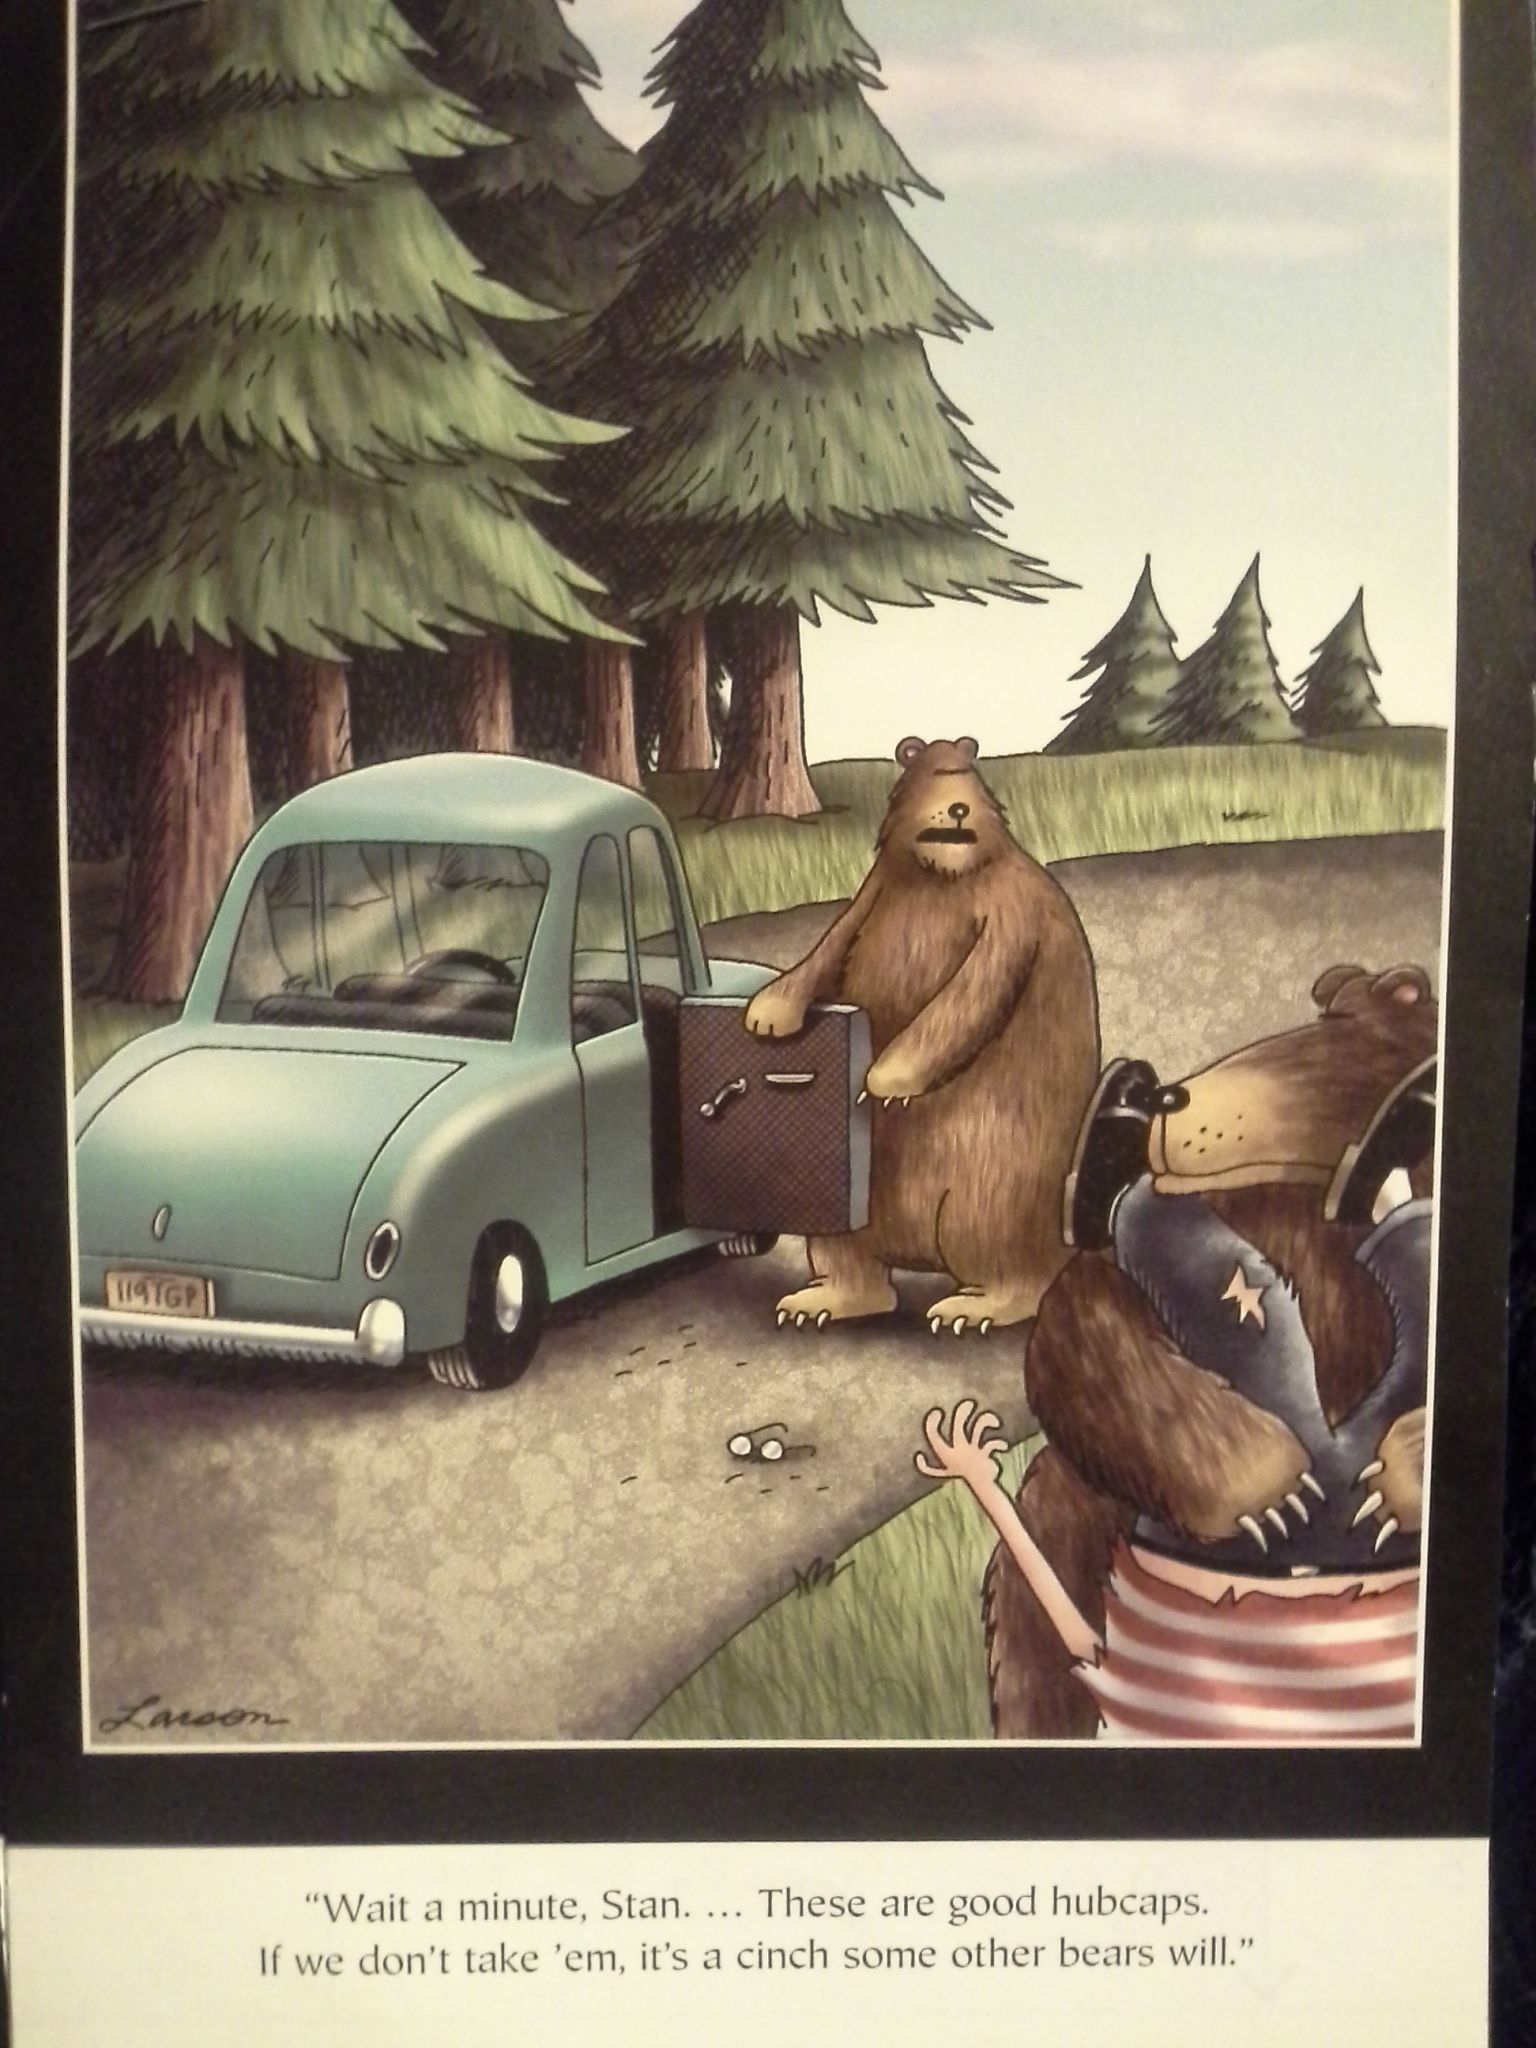 Wait a minute, Stan....These are good hubcaps.  If we don't take em, it's a cinch some other bears will....